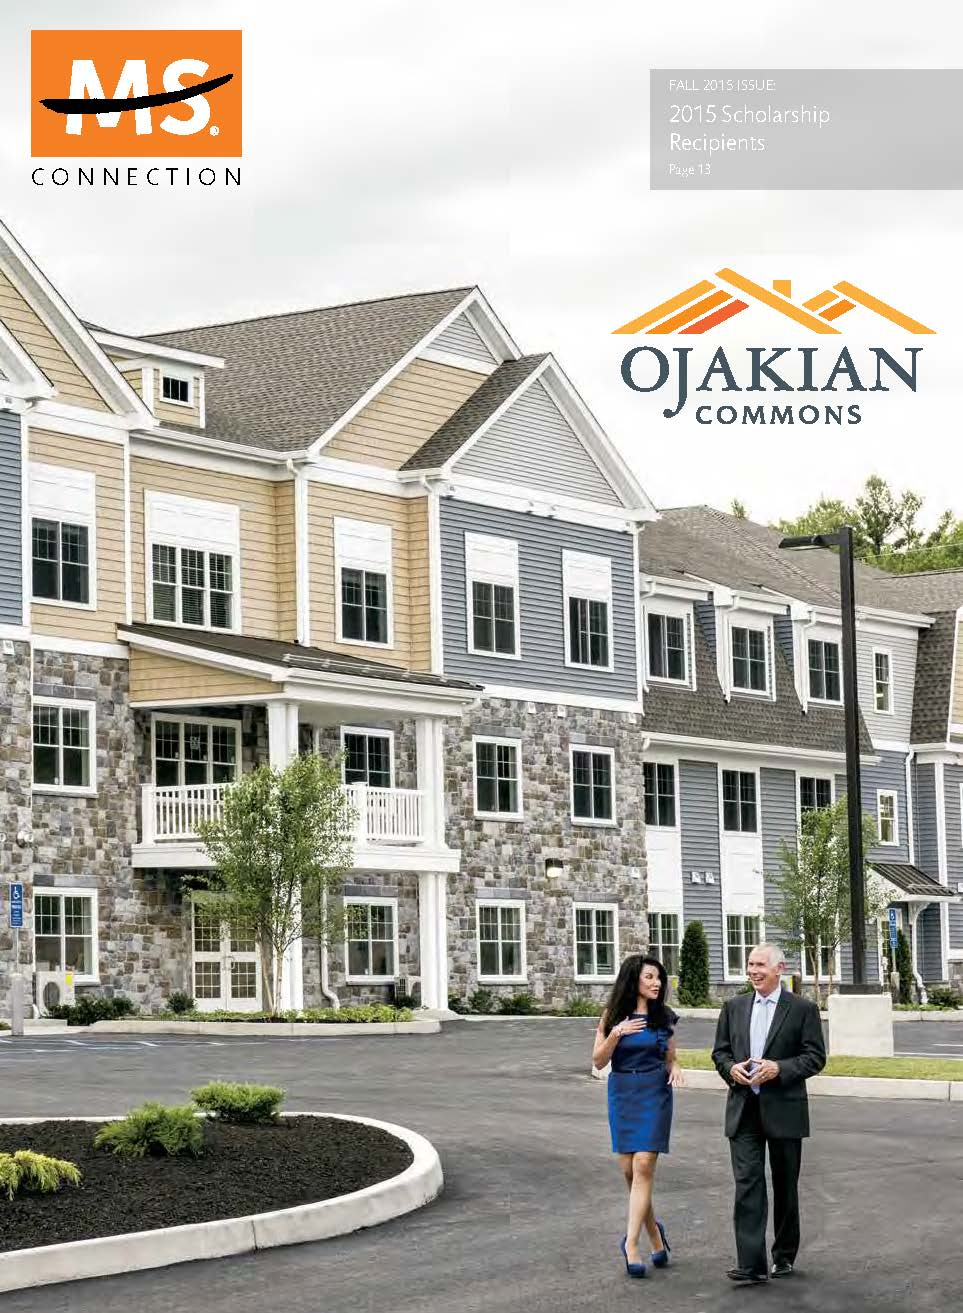 Cover Page from MS-CONNECTION-Fall-2015 - Ojakian Article